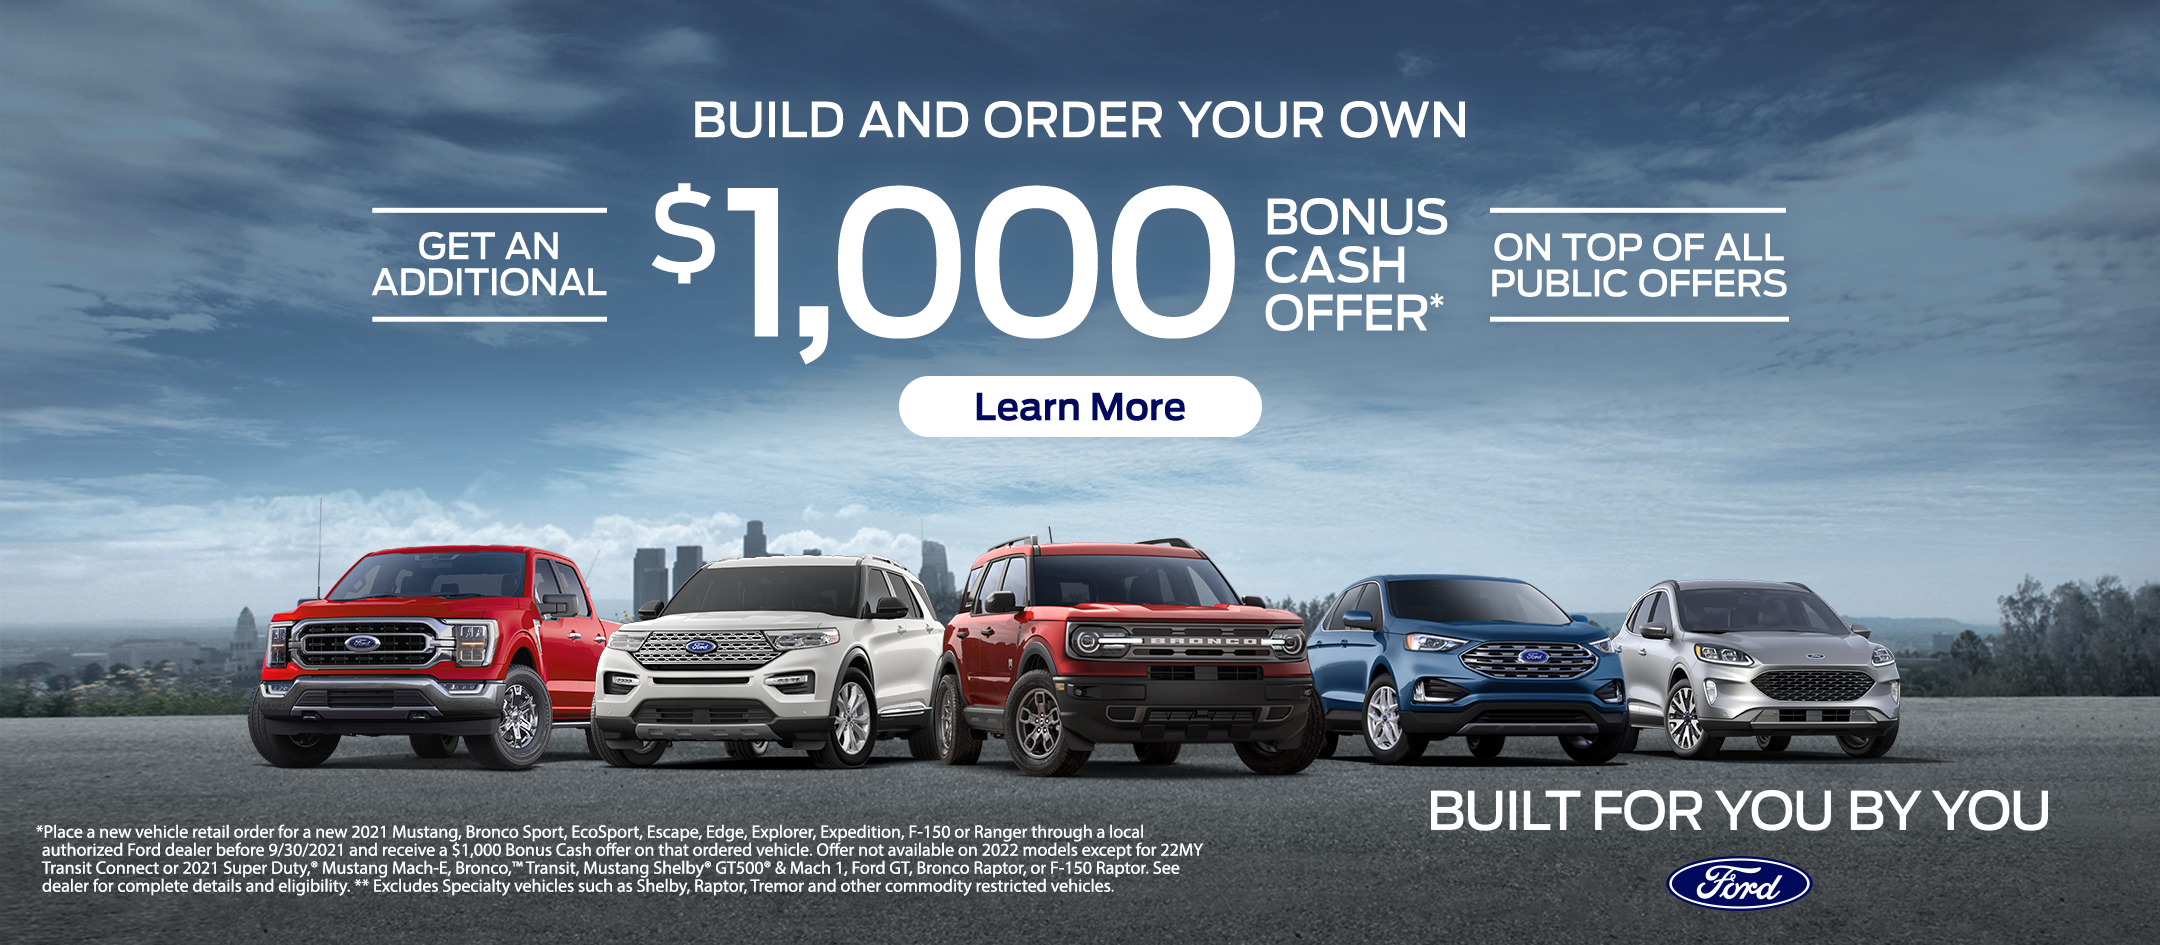 Order Your Ford Your Way